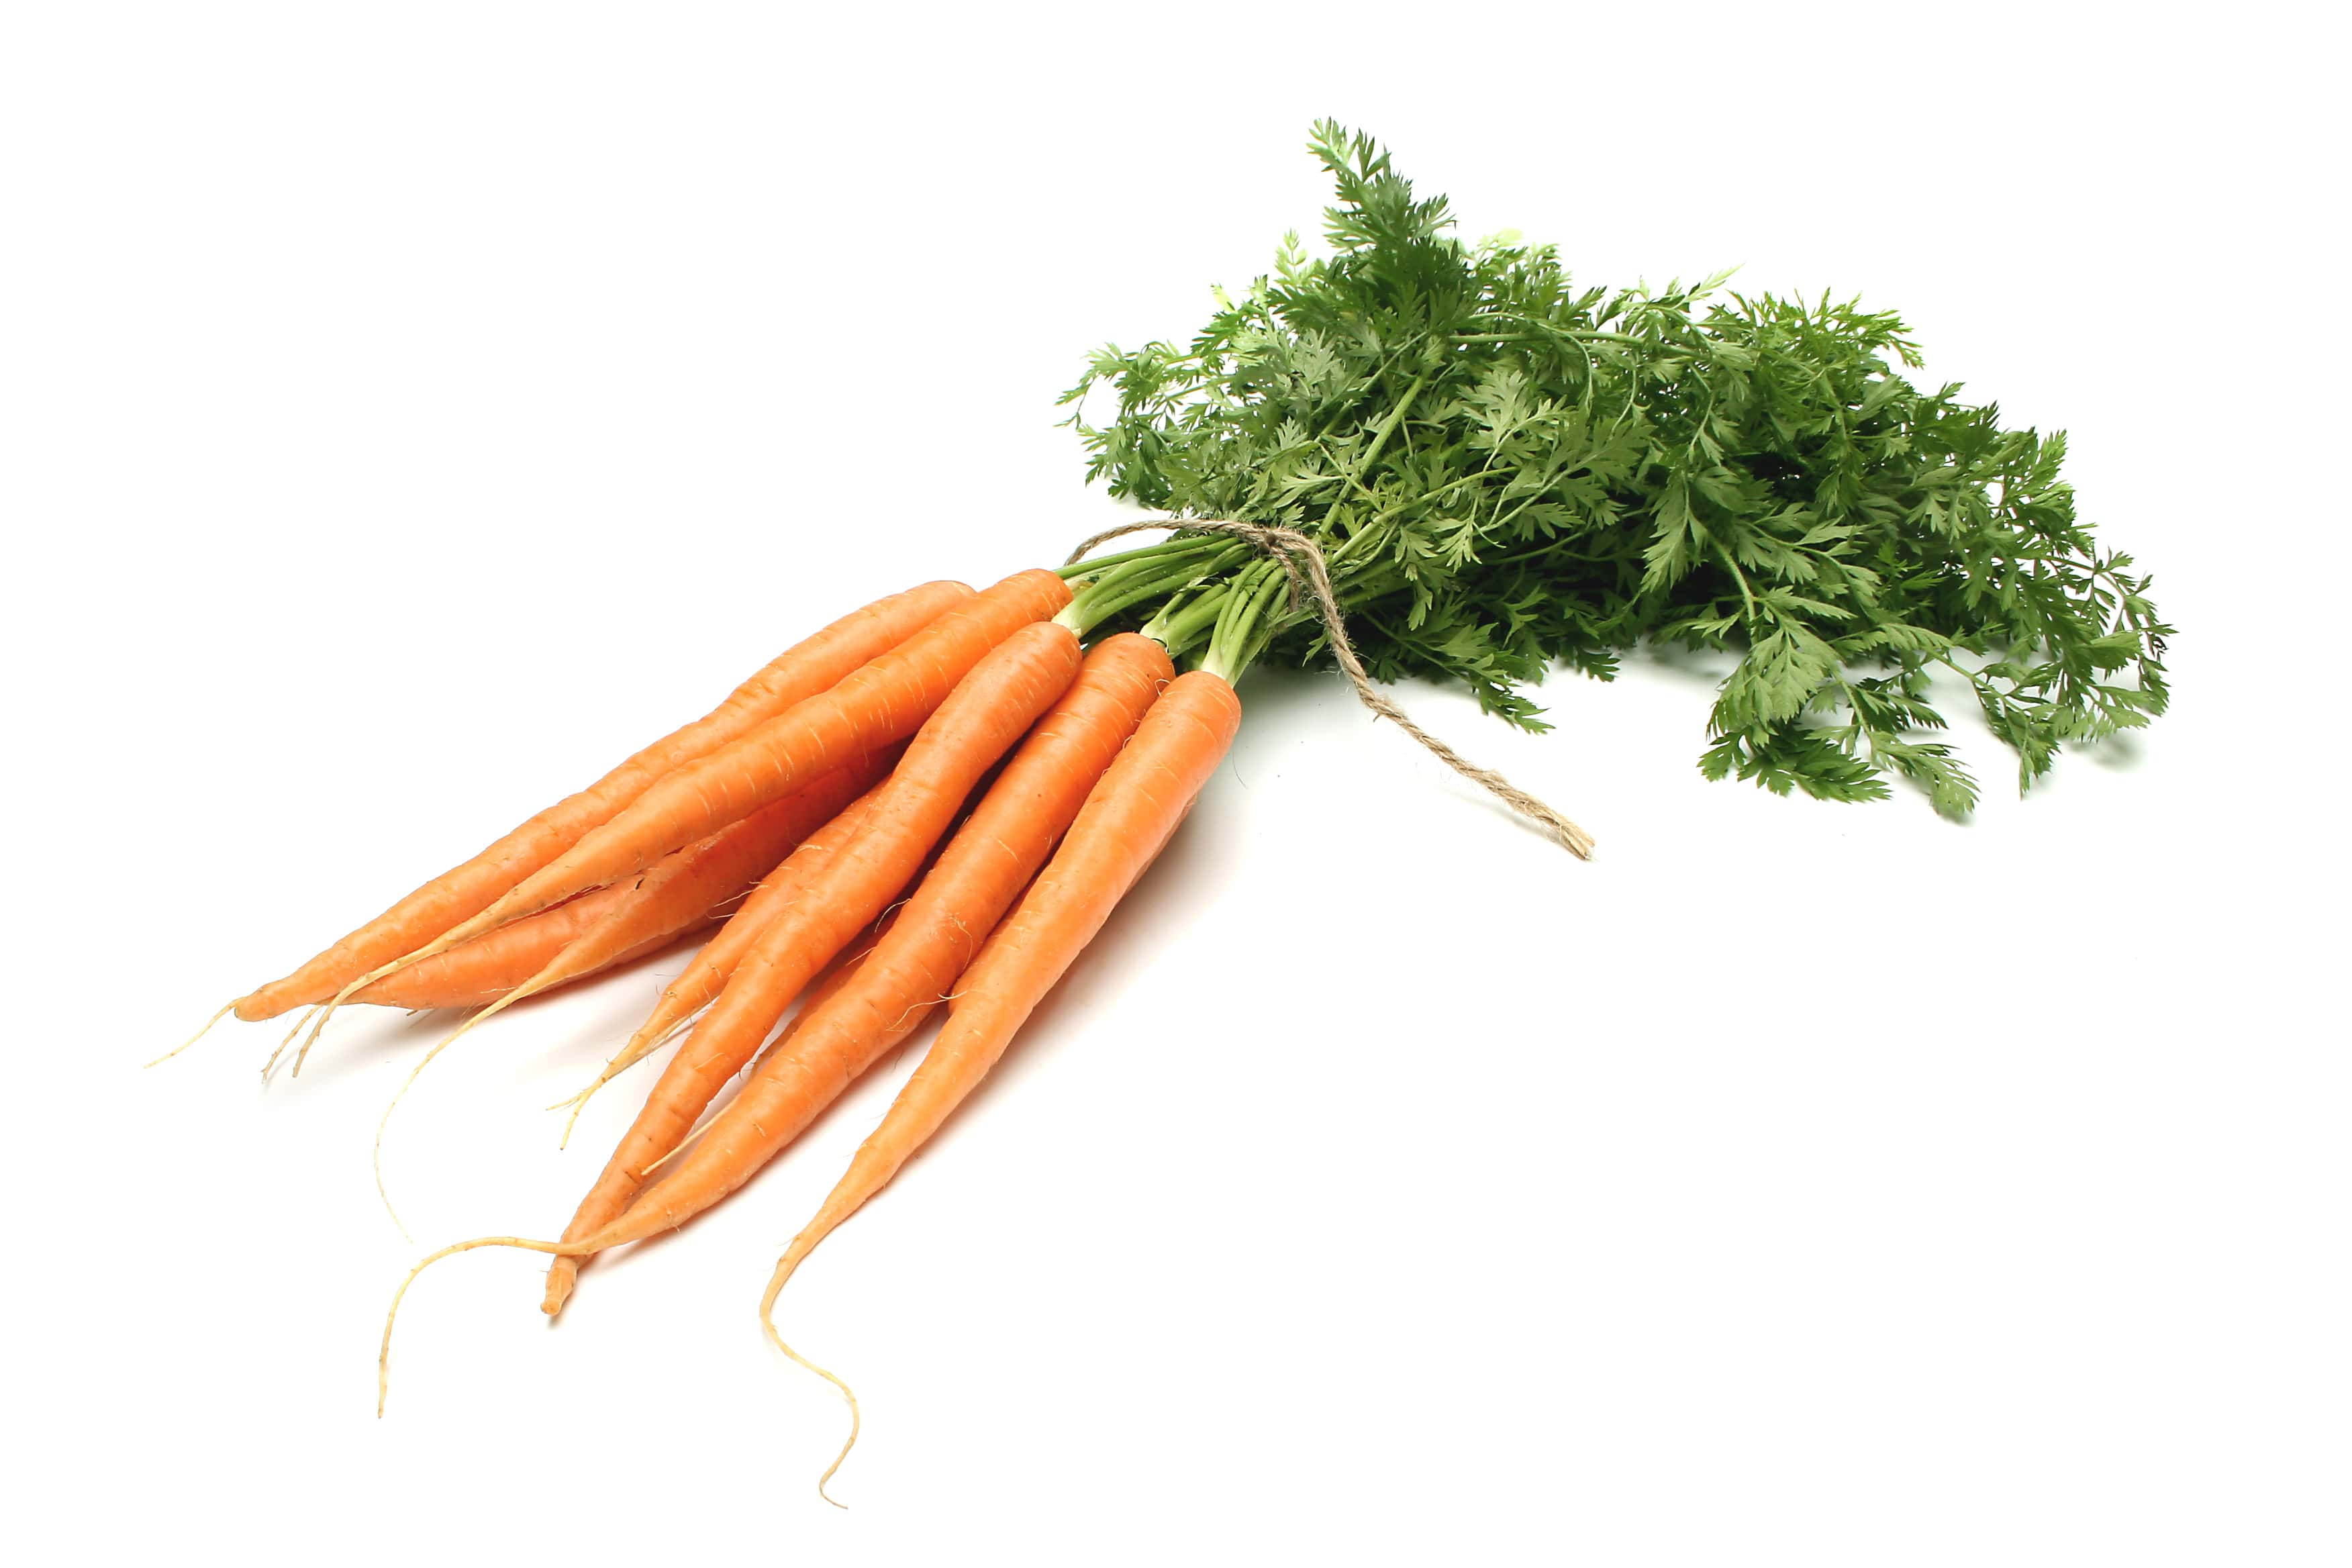 carrots-health-benefits-and-nutrition-facts1